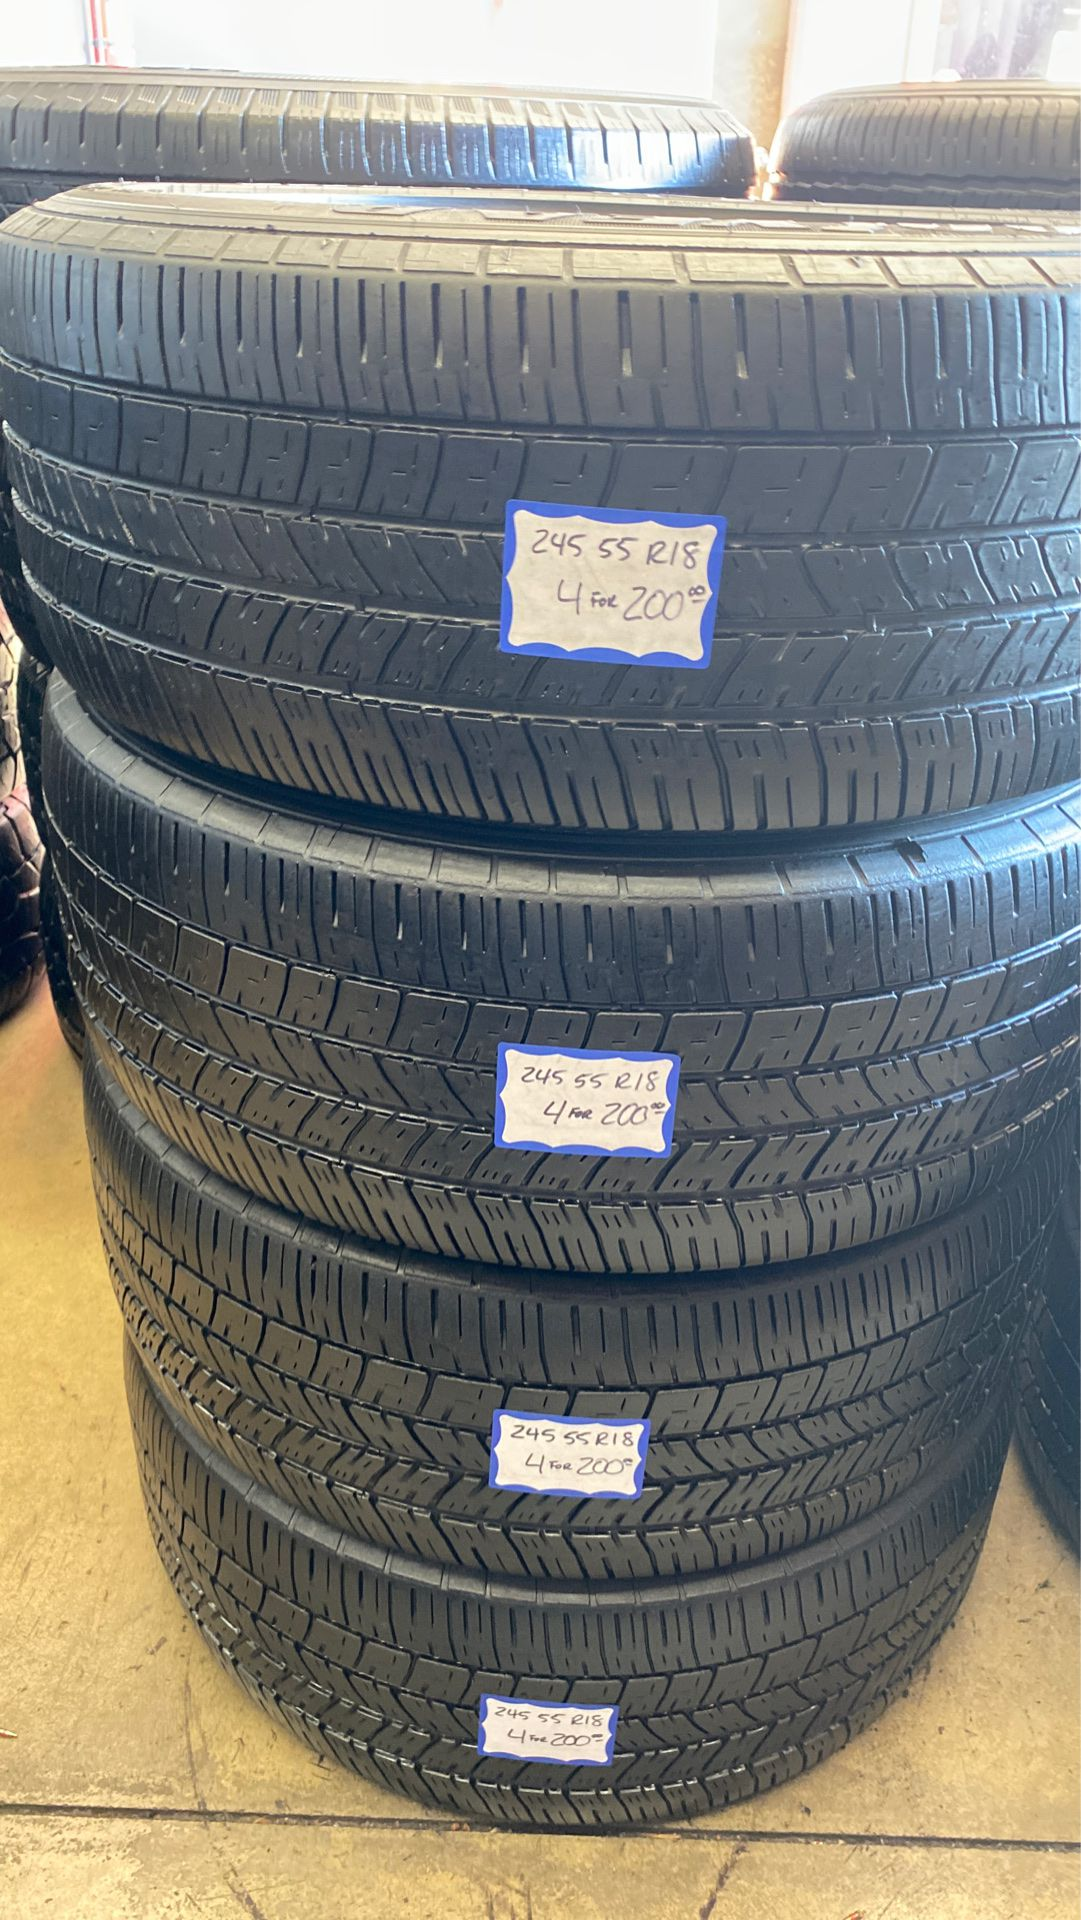 4 used tires 245/55/R18 good years. Free mount and high speed balance included